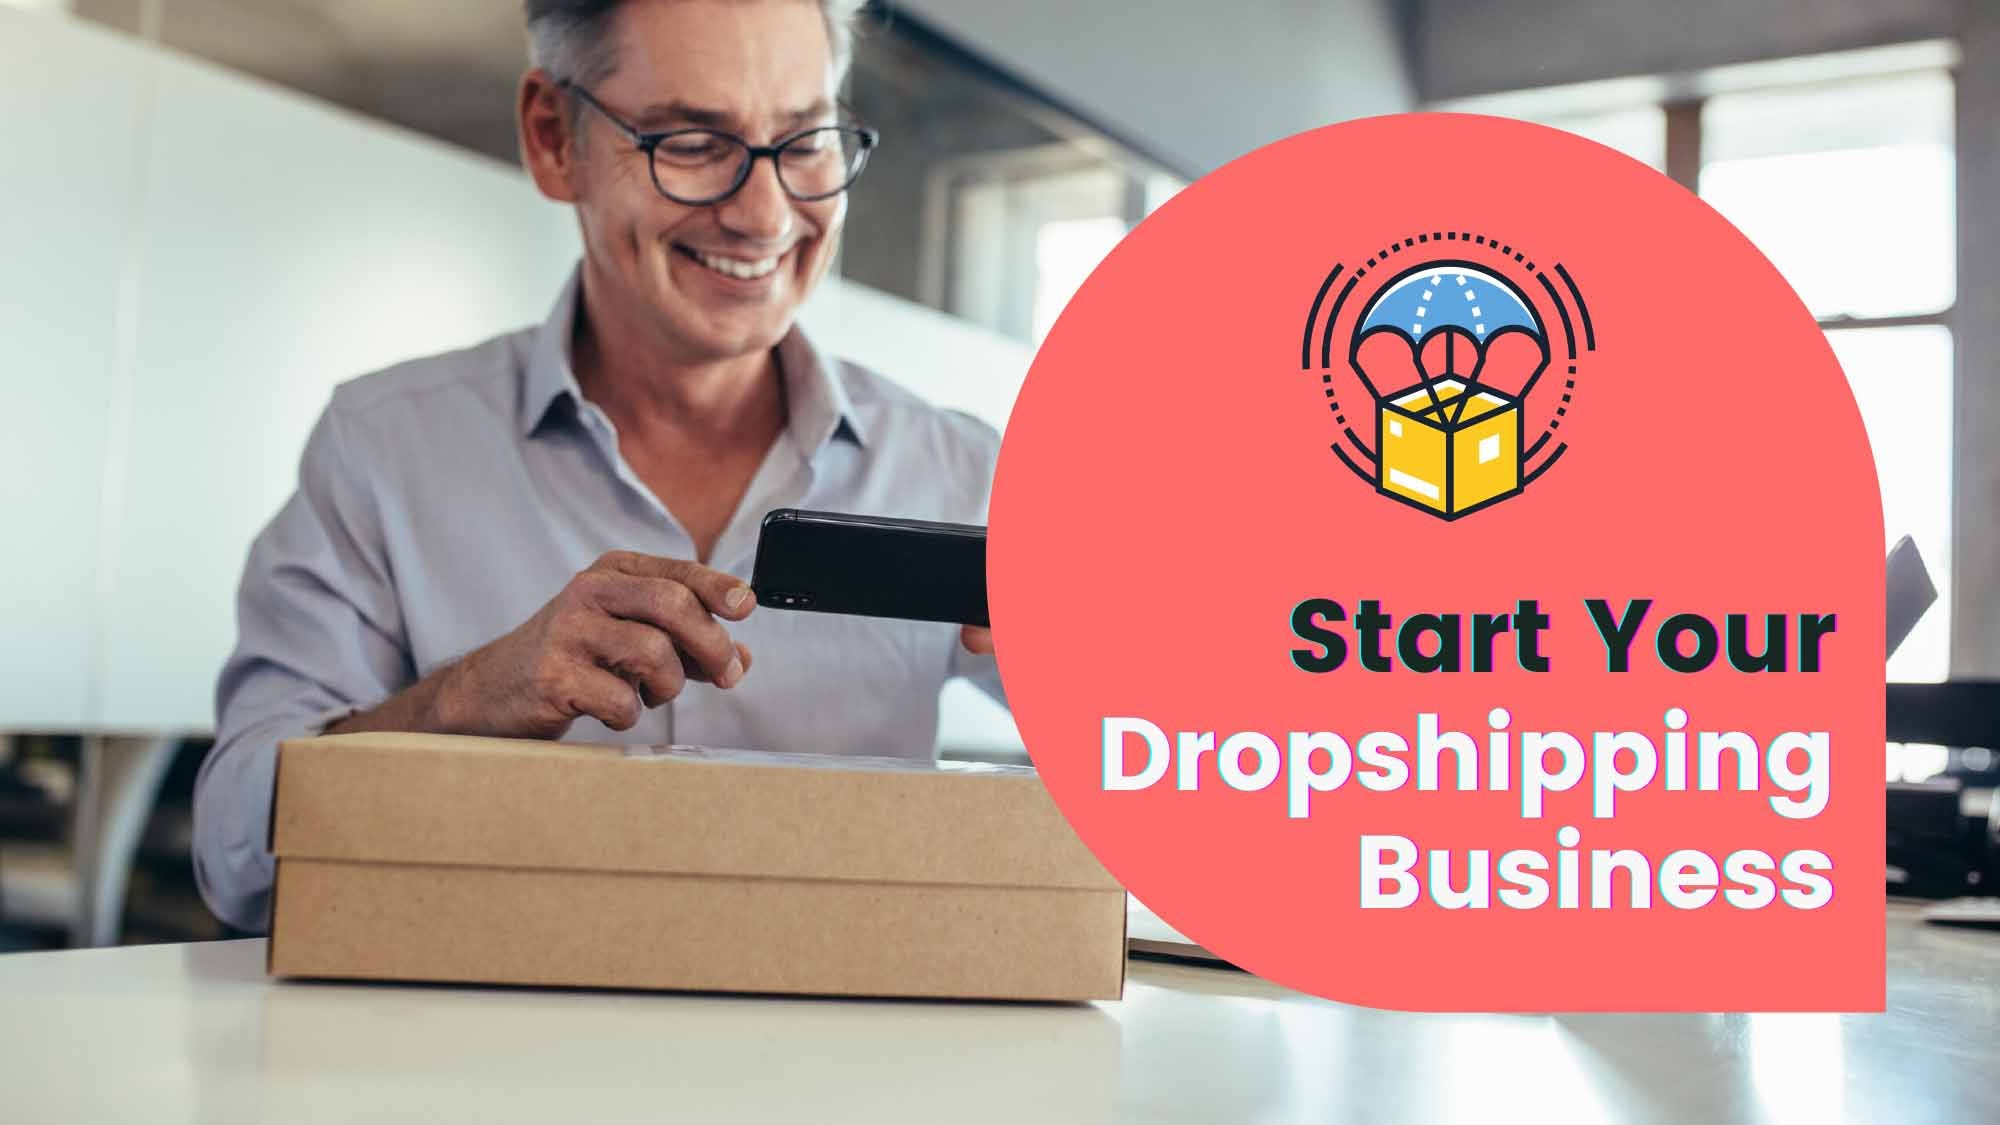 Start Your Dropshipping Business-DropshipUSA